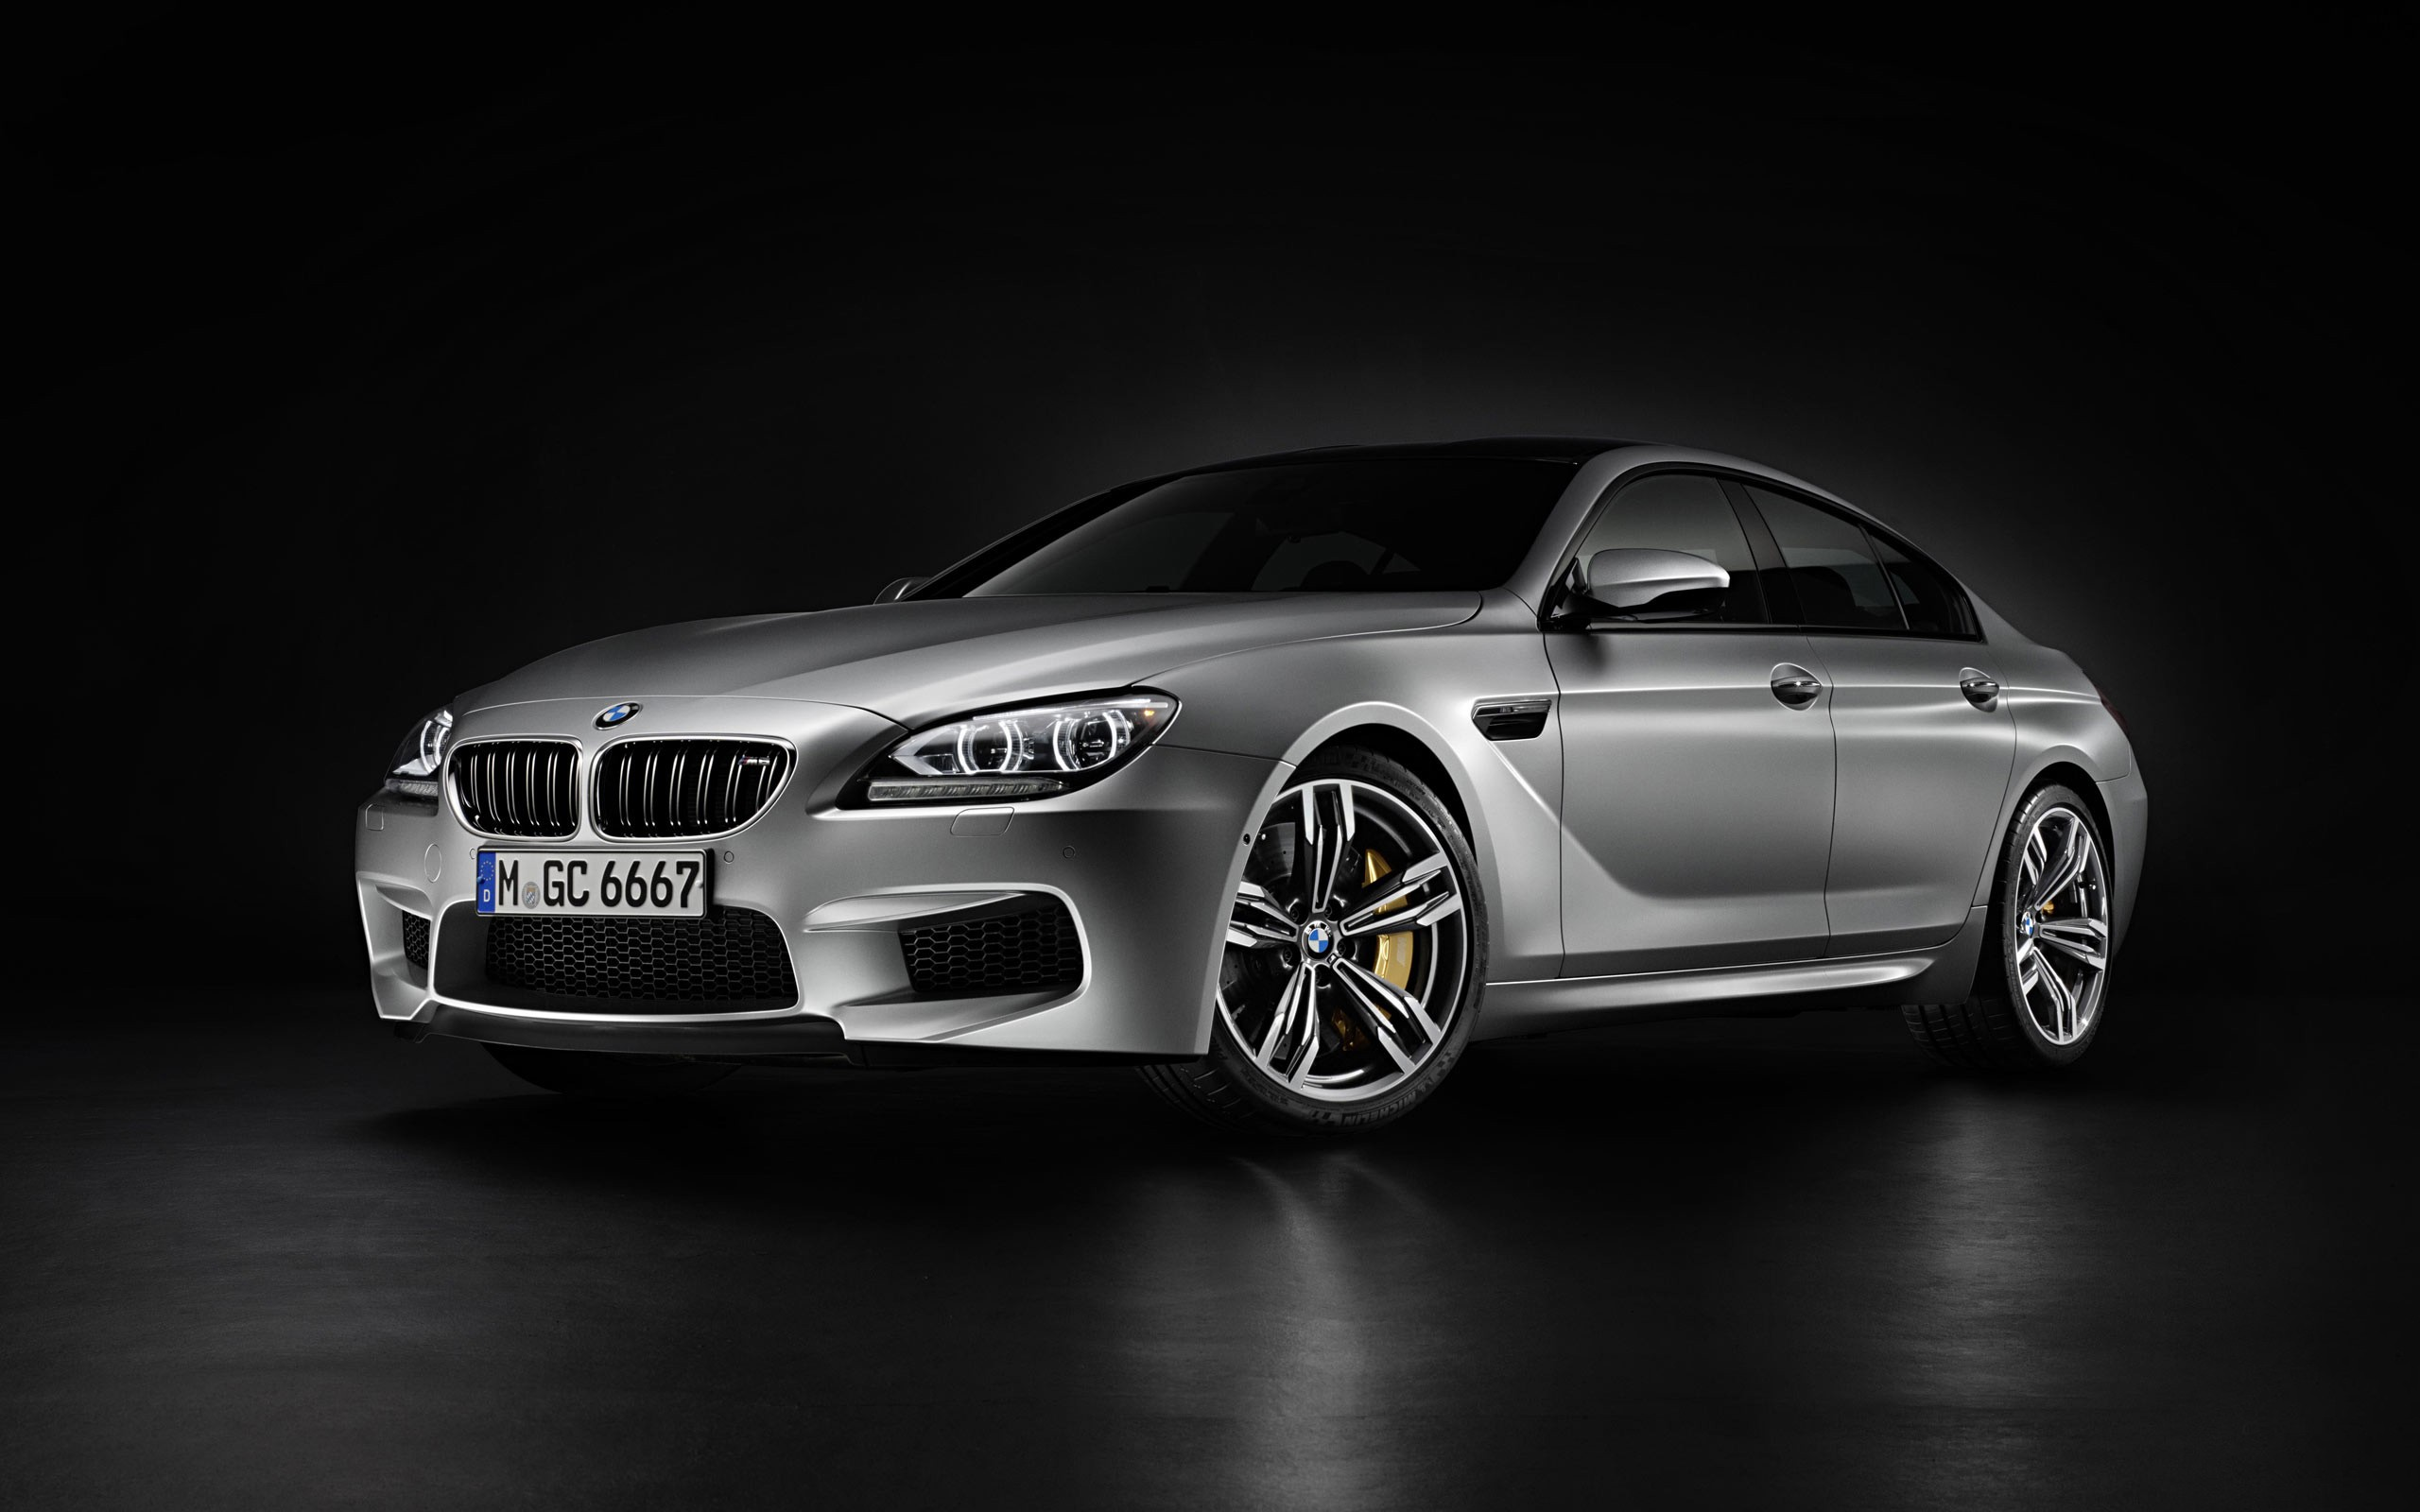 bmw m6 gran coupe 2014 wallpaper